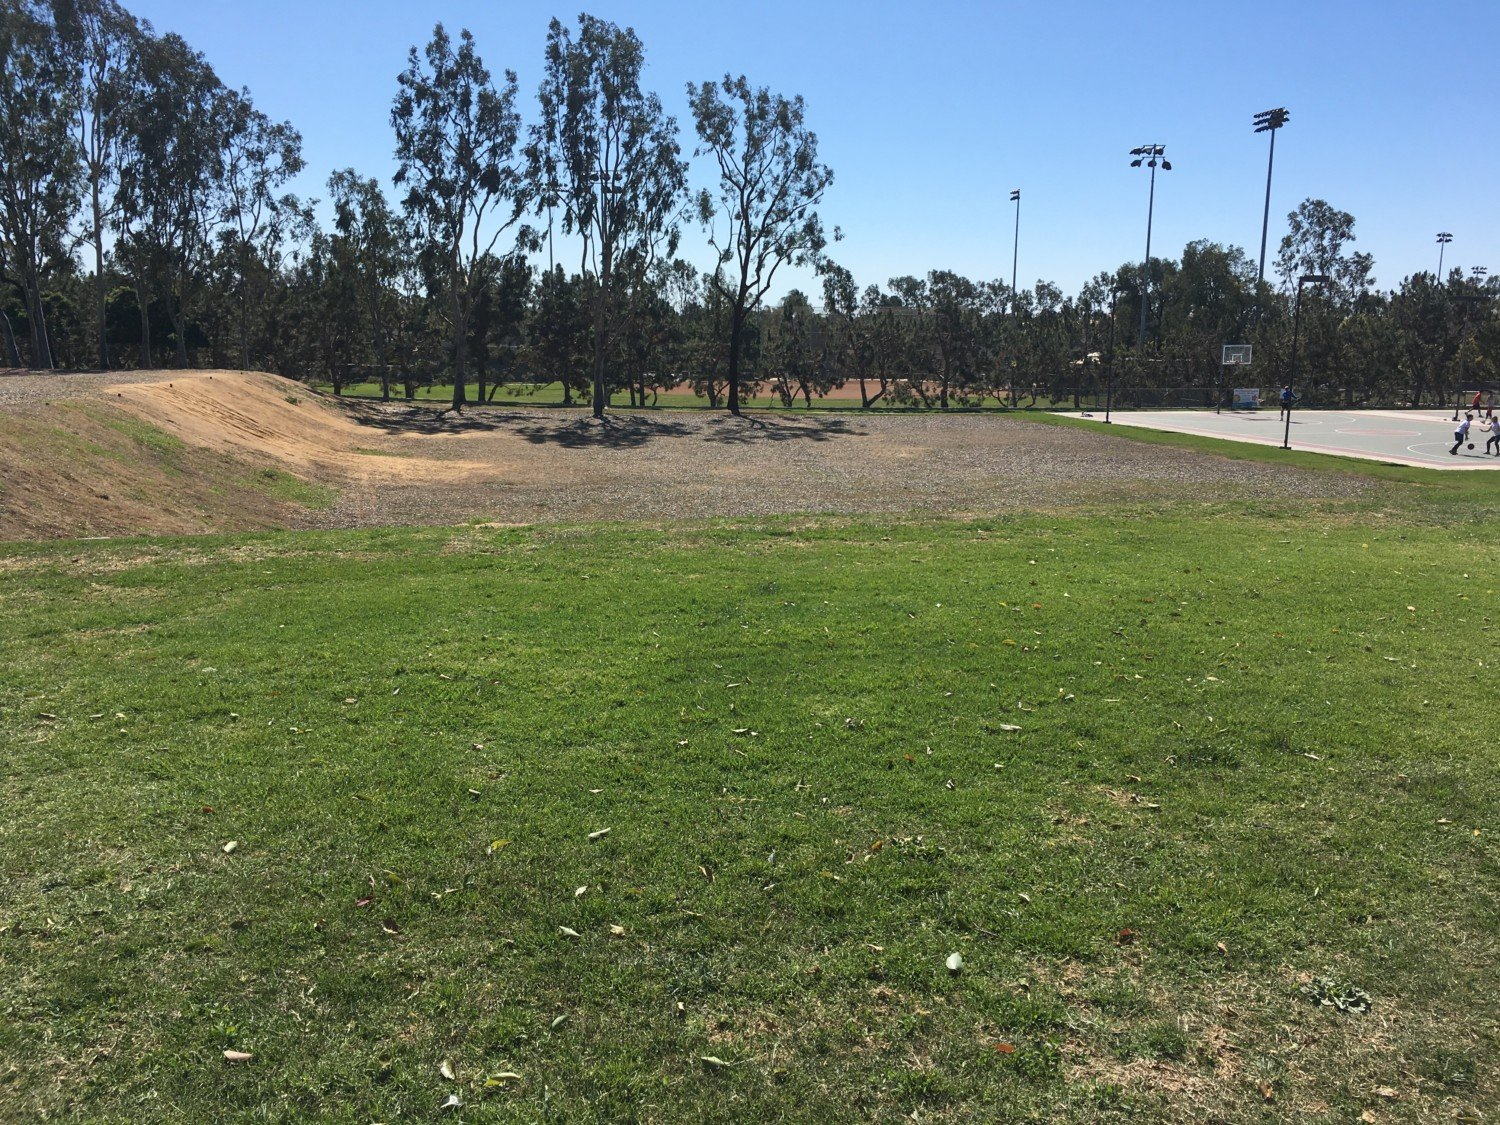 Council OKs revised plans for Aviara, Poinsettia parks projects